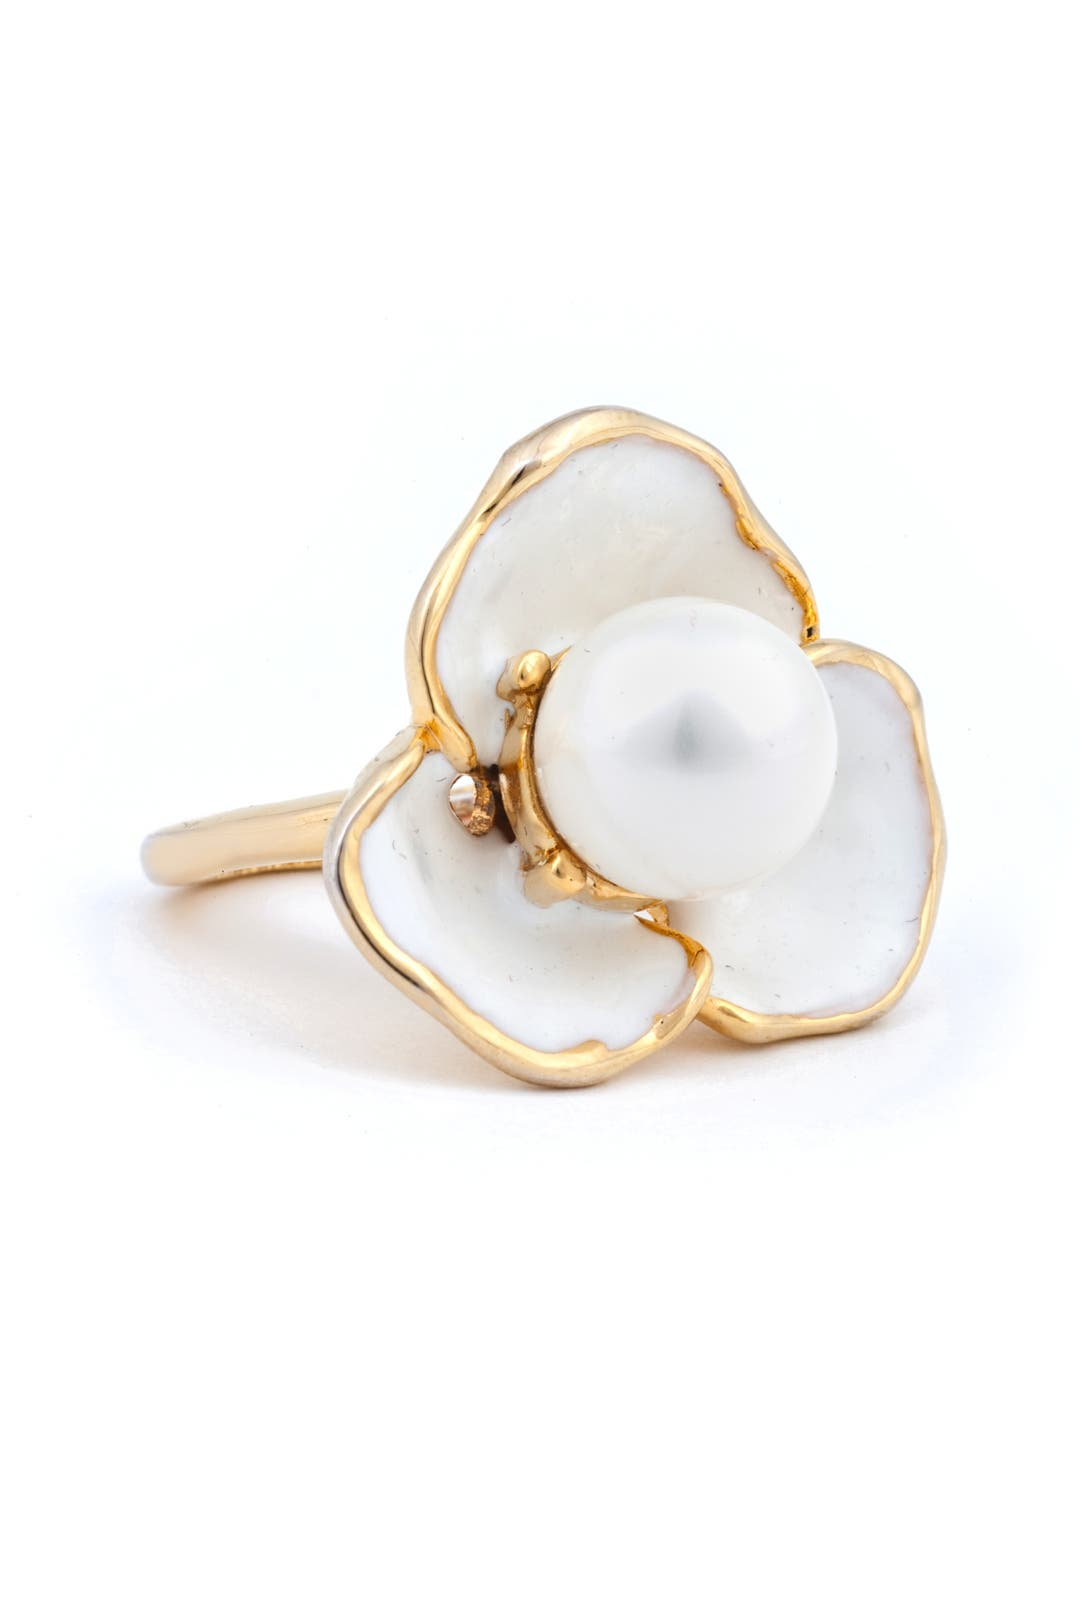 Pure Flower Power Ring by Kenneth Jay Lane